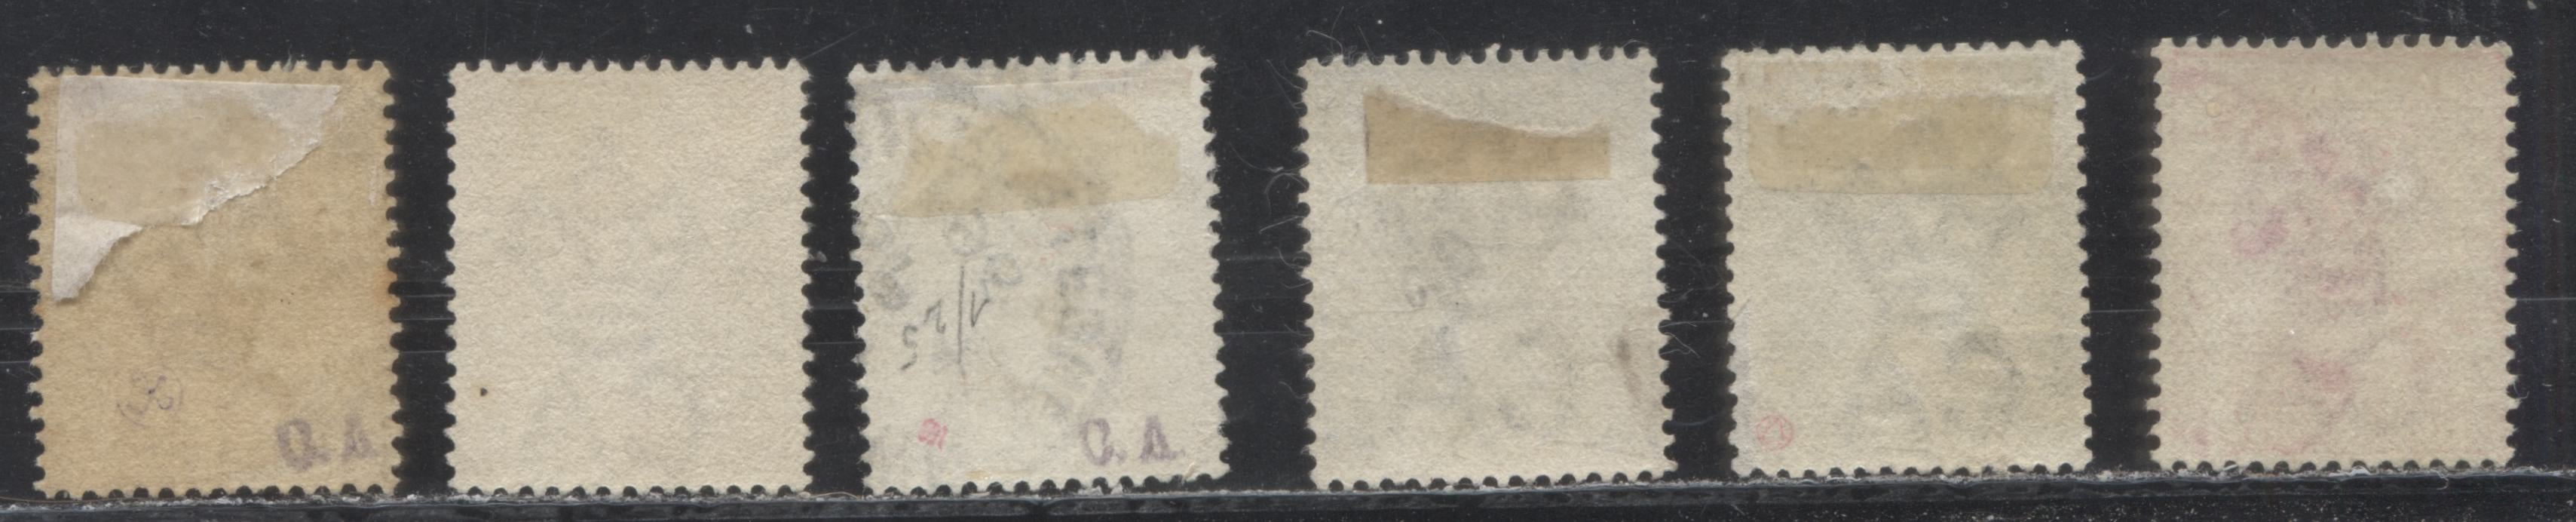 Sierra Leone #23/31 (SG#28/34) 1d Carmine - 1/- Red Brown, Queen Victoria, 1884-1891 Keyplate Issue, Perf. 14, Watermarked Crown CA, Six Fine Used Stamps